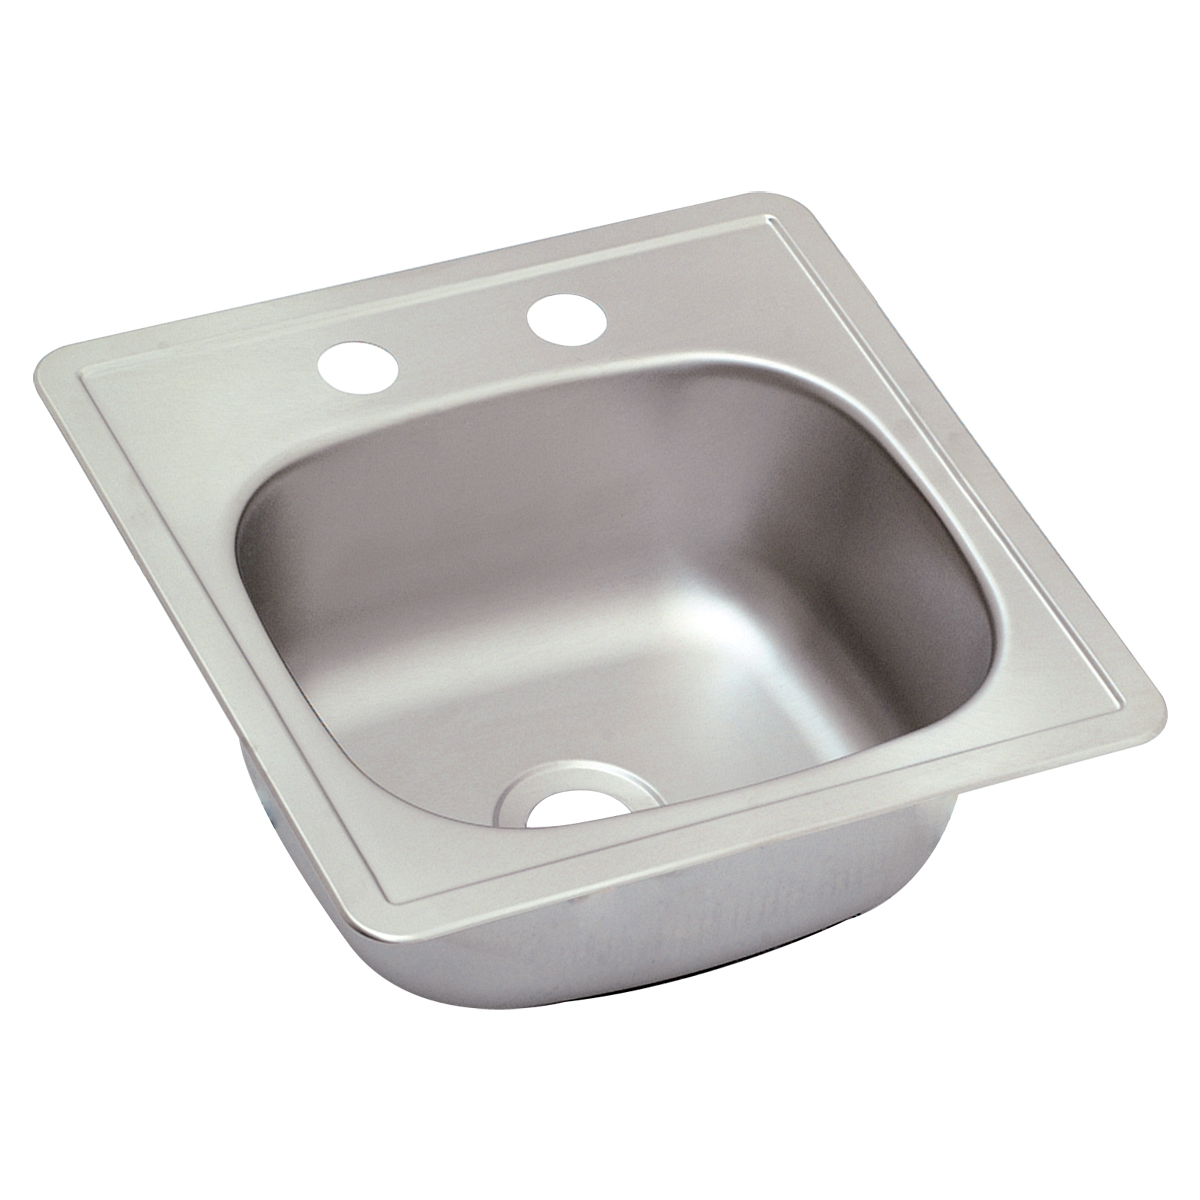 Single Bowl Stainless Steel Bar Sink   2 Hole